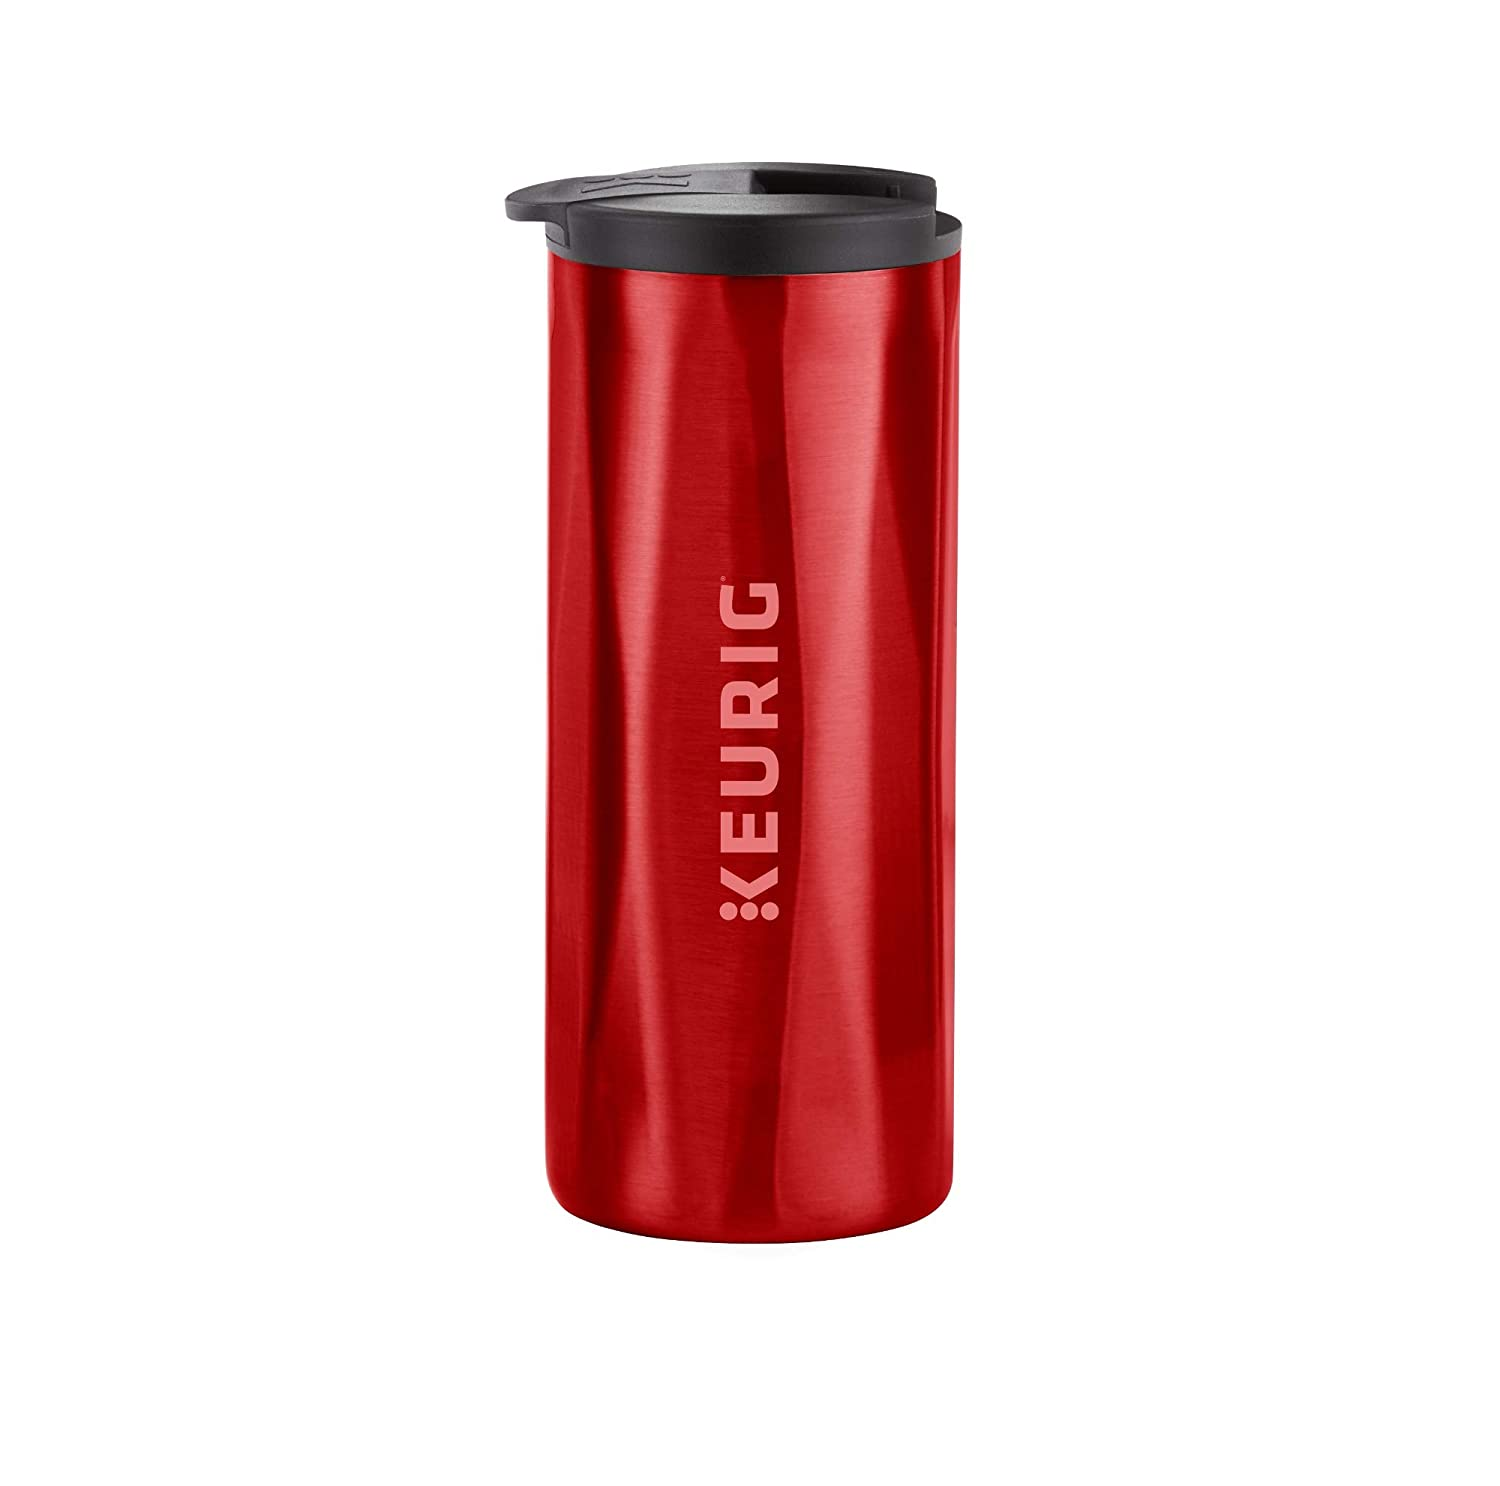 Keurig Faceted Stainless Steel Coffee Travel Mug, Fits Under Any Keurig K-Cup Pod Coffee Maker, 14 oz, Red